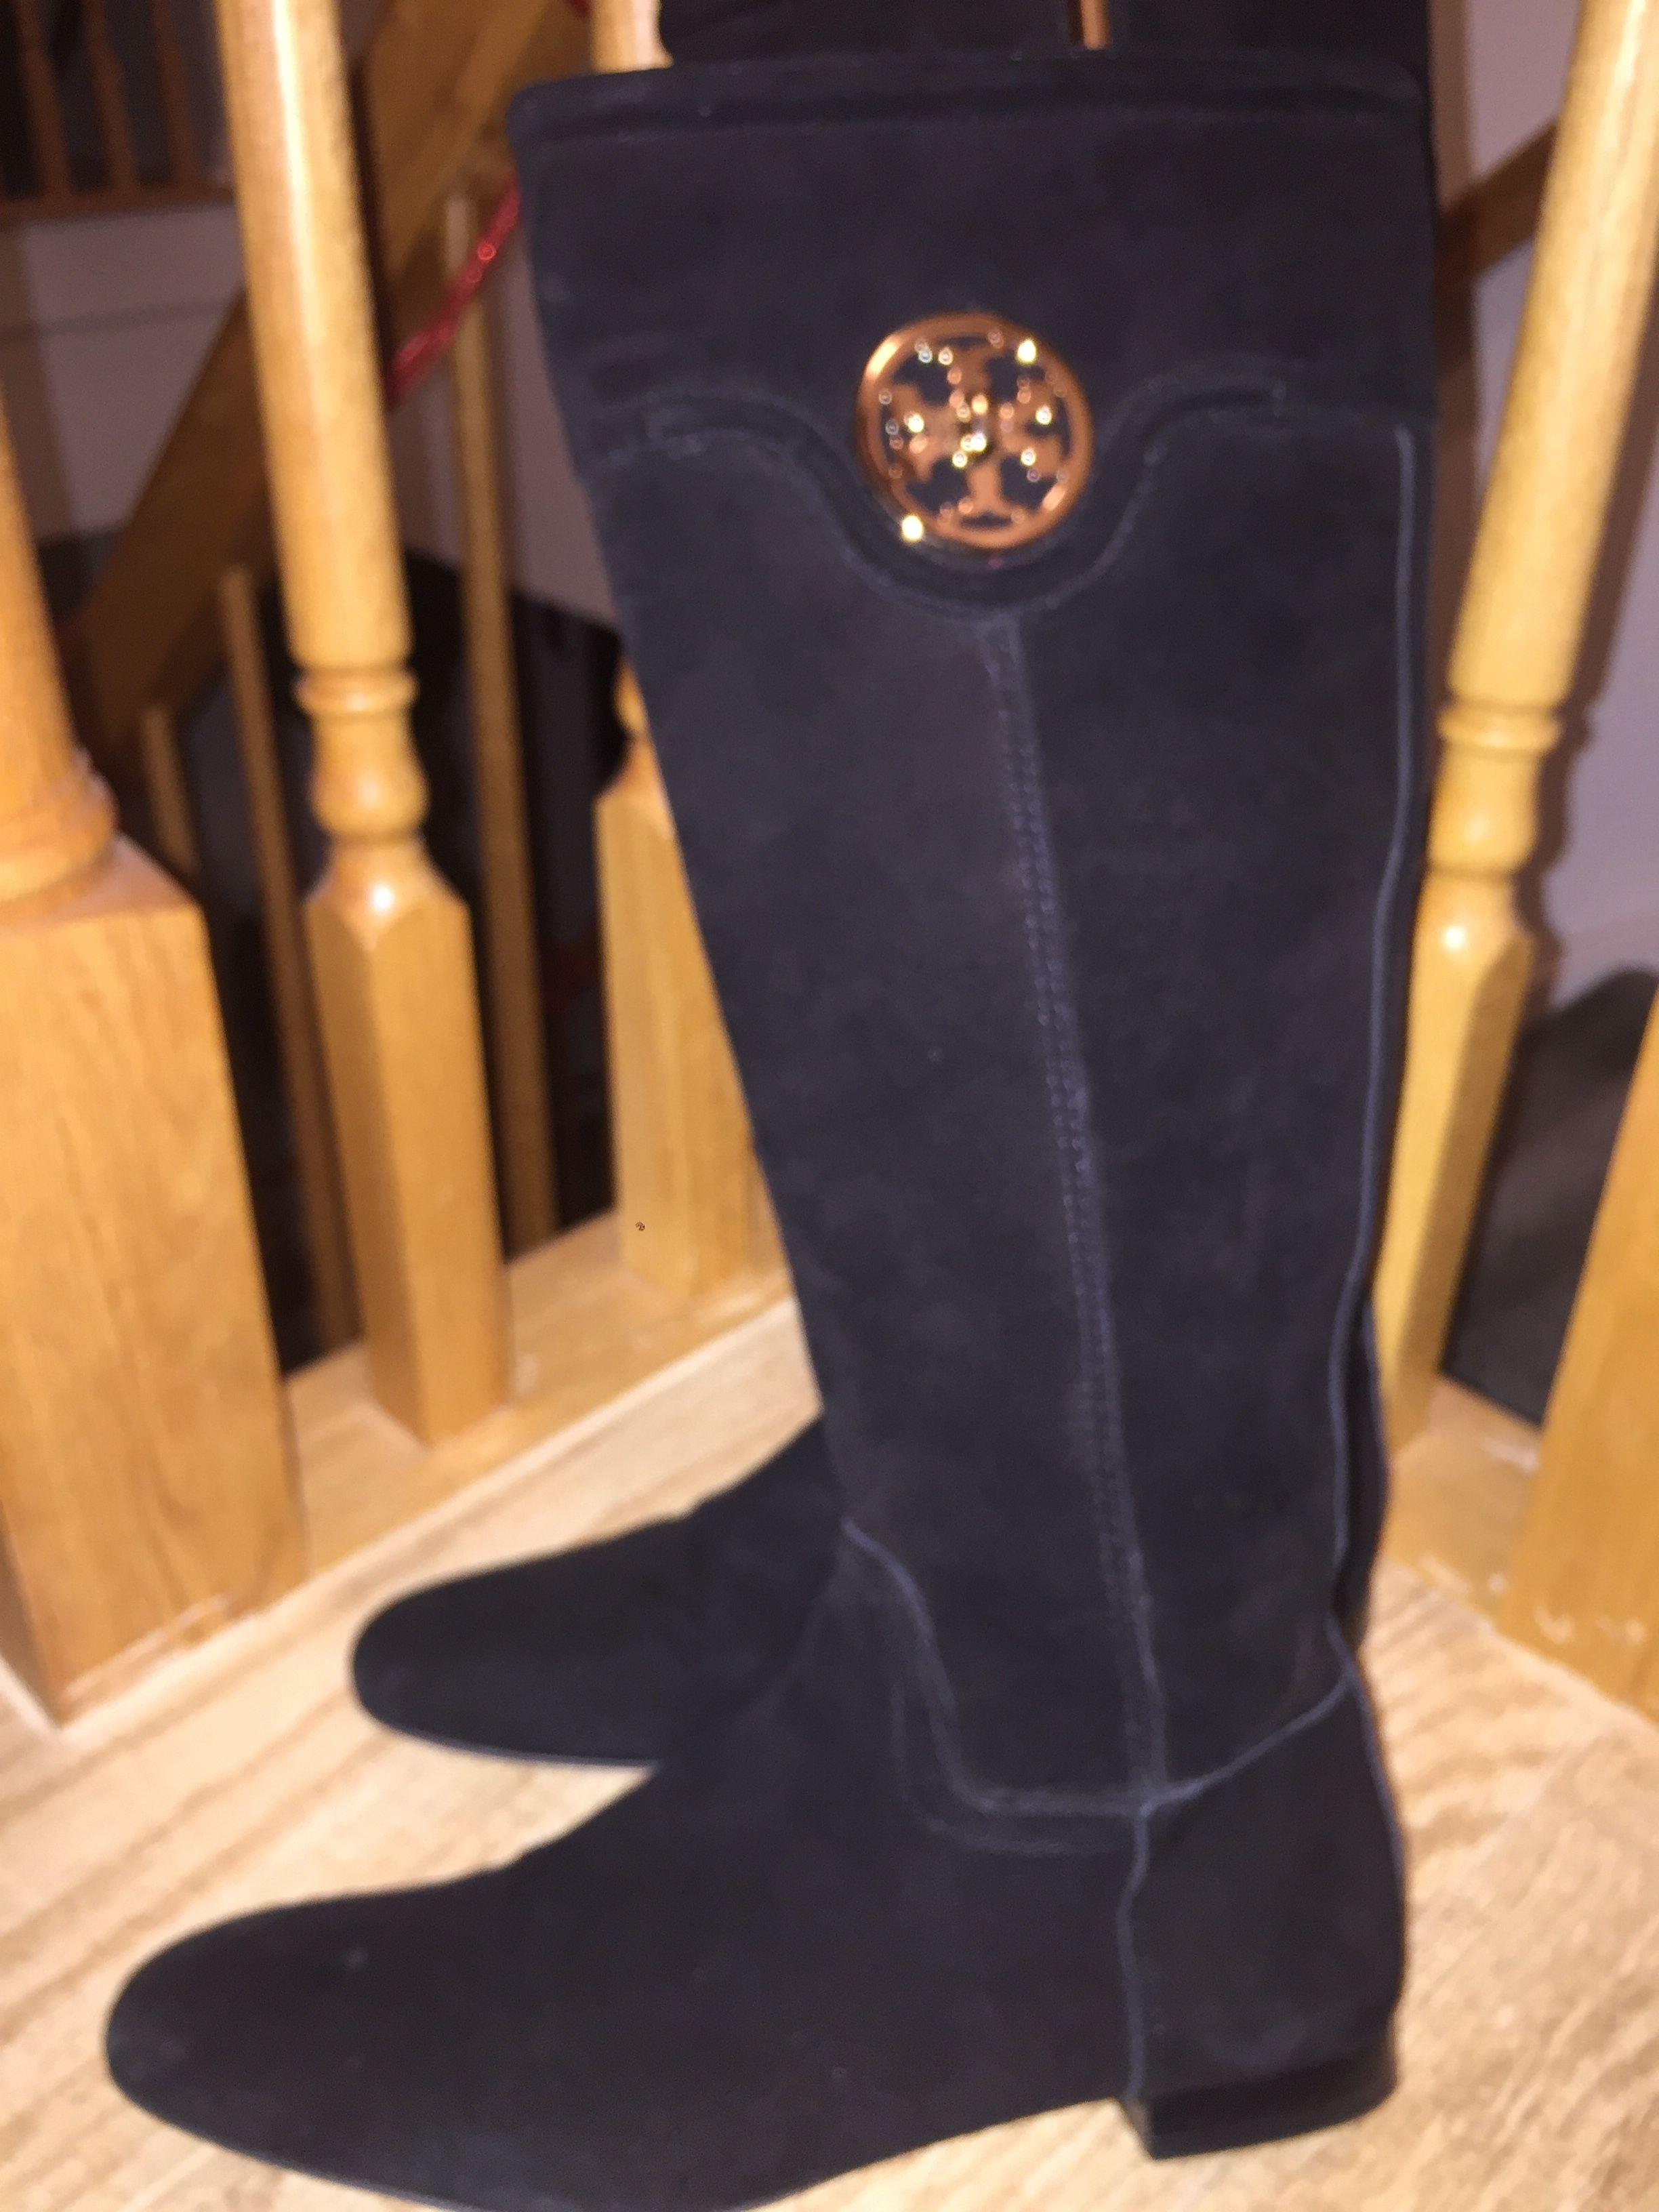 3a30bfc4e5e0 ... promo code for tory burch black suede selma riding boots booties size  us 9 regular m b